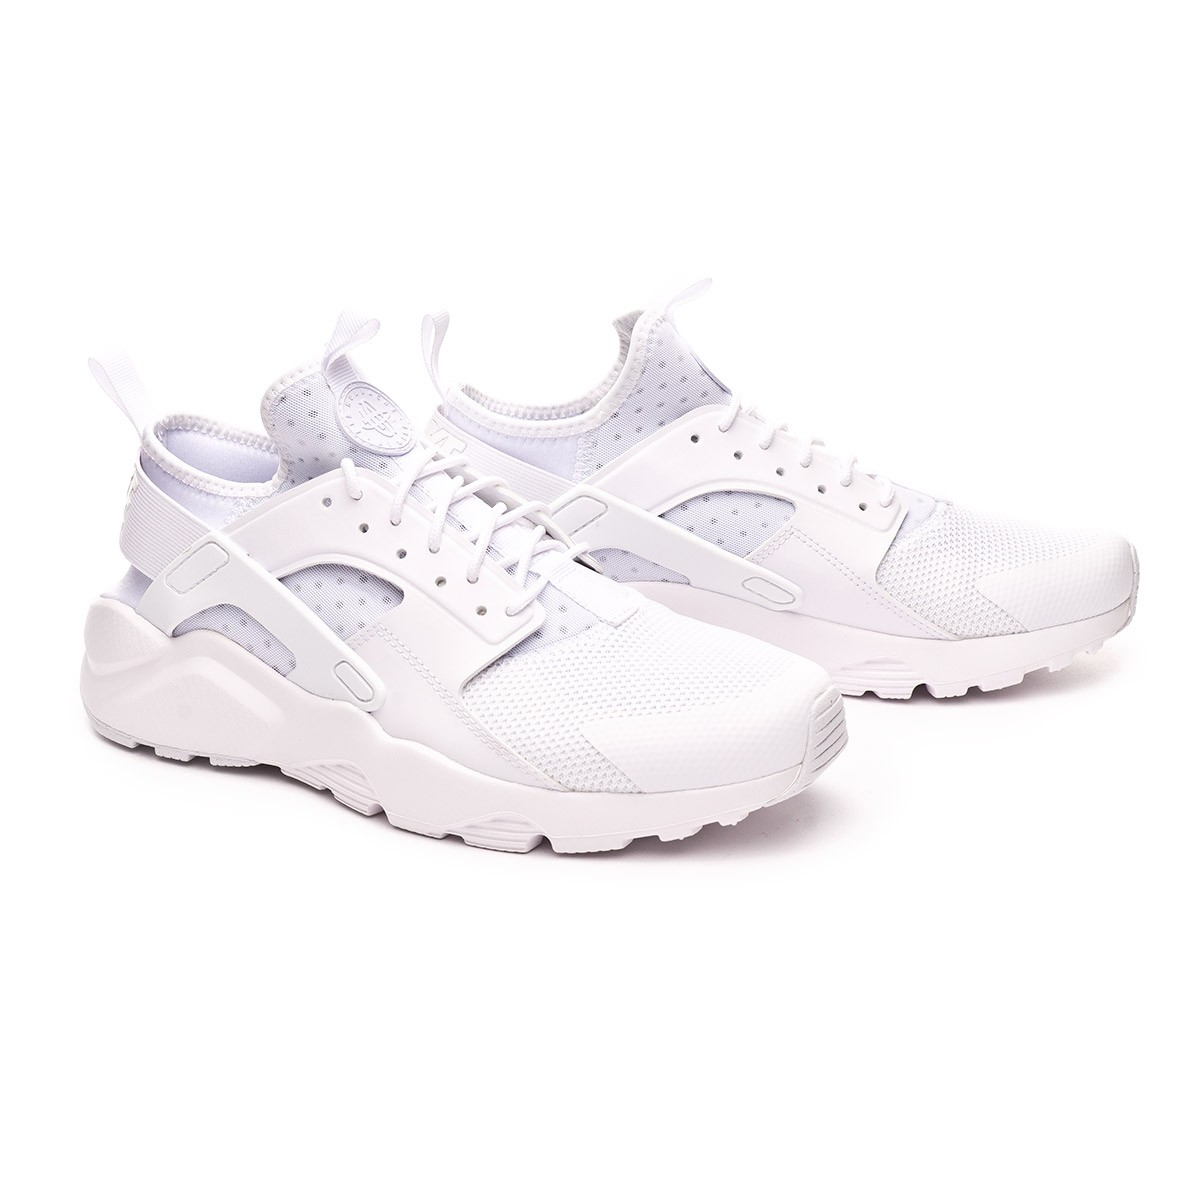 new arrival 3f1f0 5e786 Baskets Nike Air Huarache Run Ultra 2019 White - Boutique de football  Fútbol Emotion